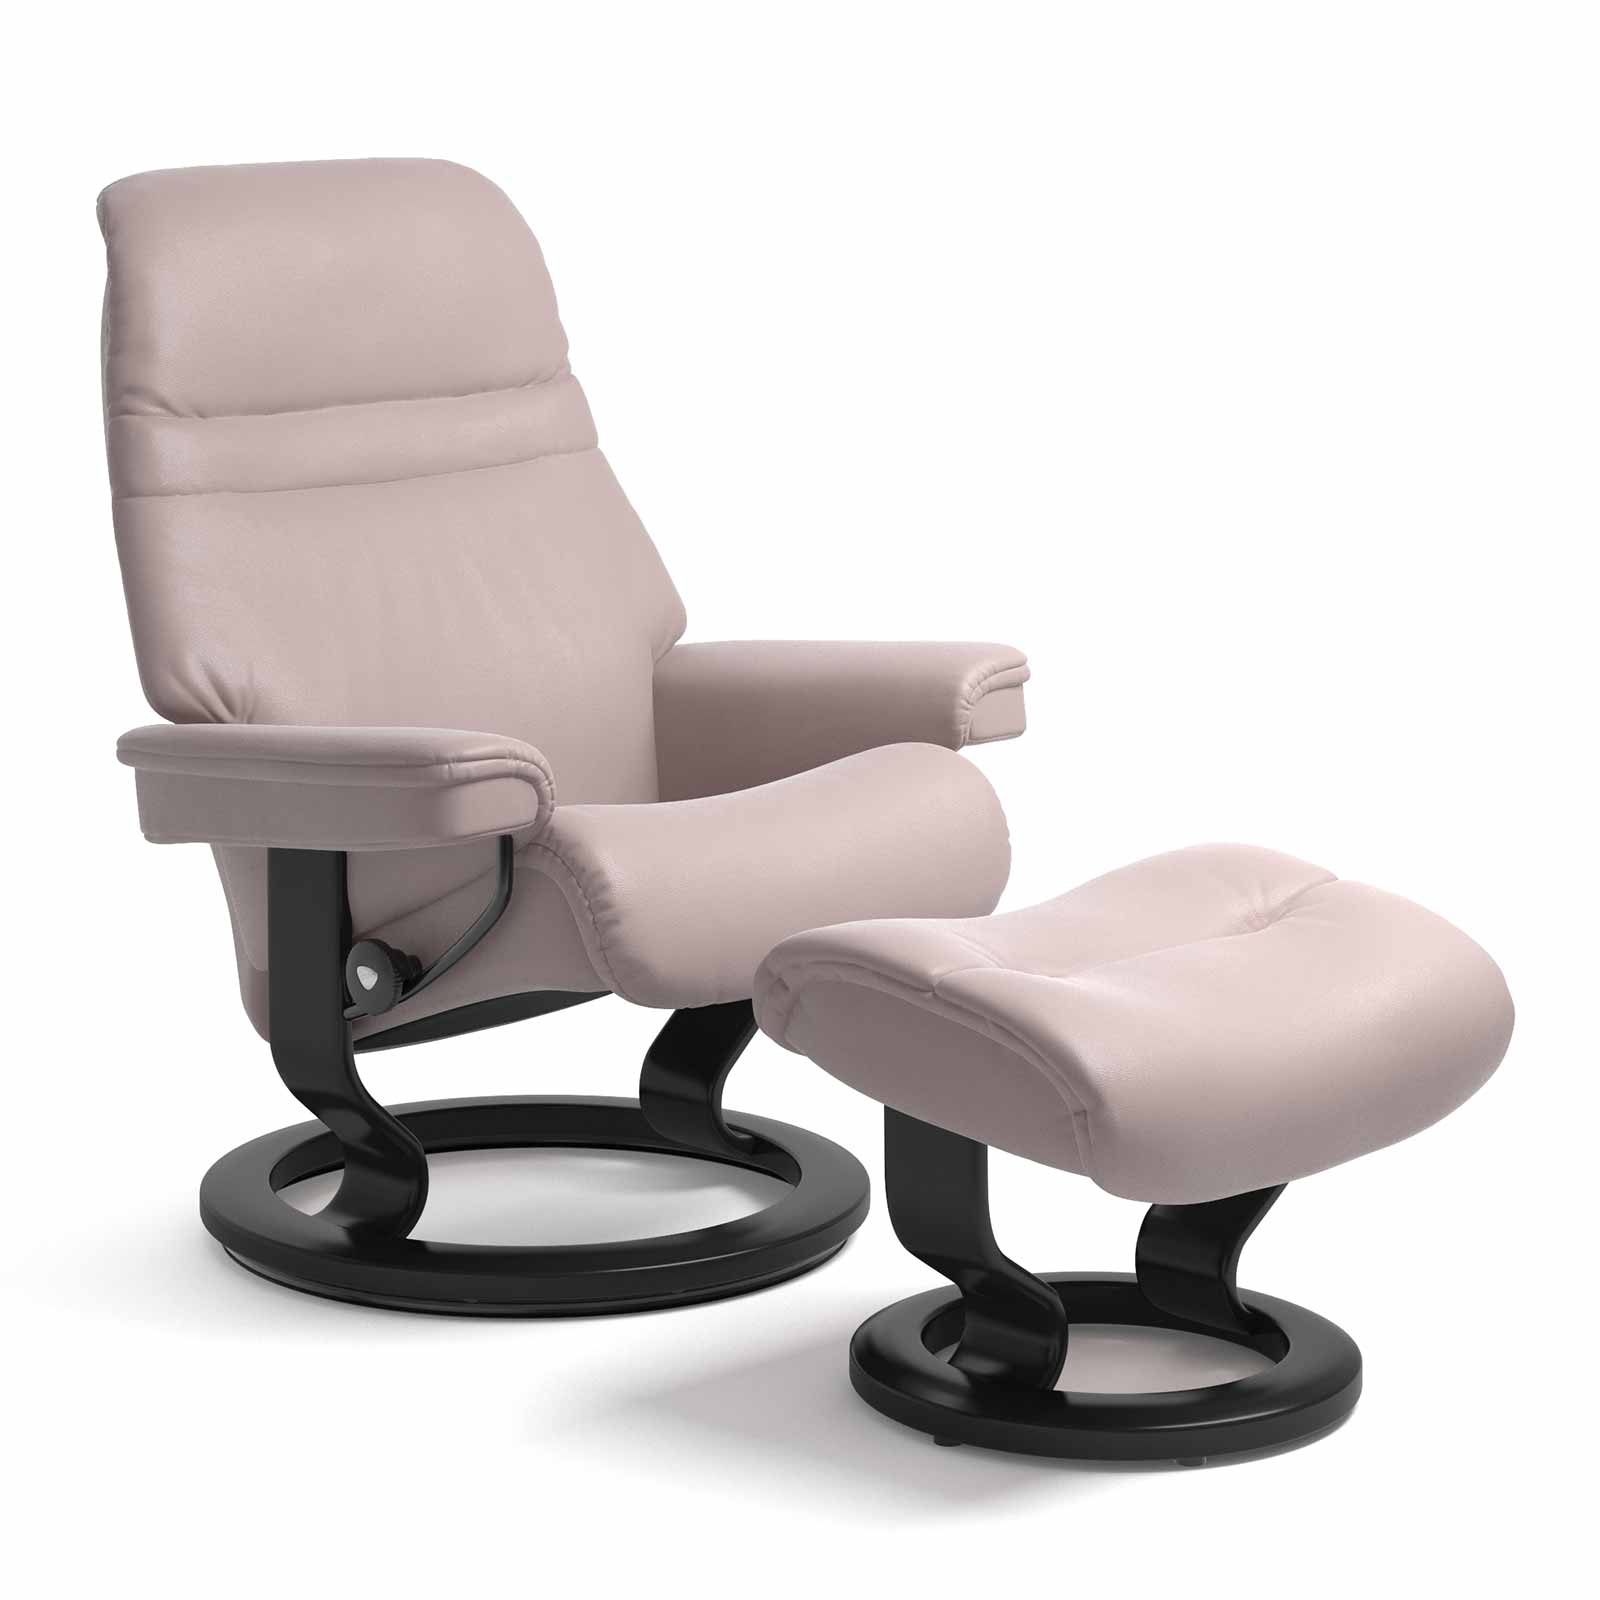 Stressless Sessel Inkl. Hocker Modell Sunrise (m) Classic Stressless Sessel Sunrise Classic Leder Batick Smoke Rose Mit Hocker